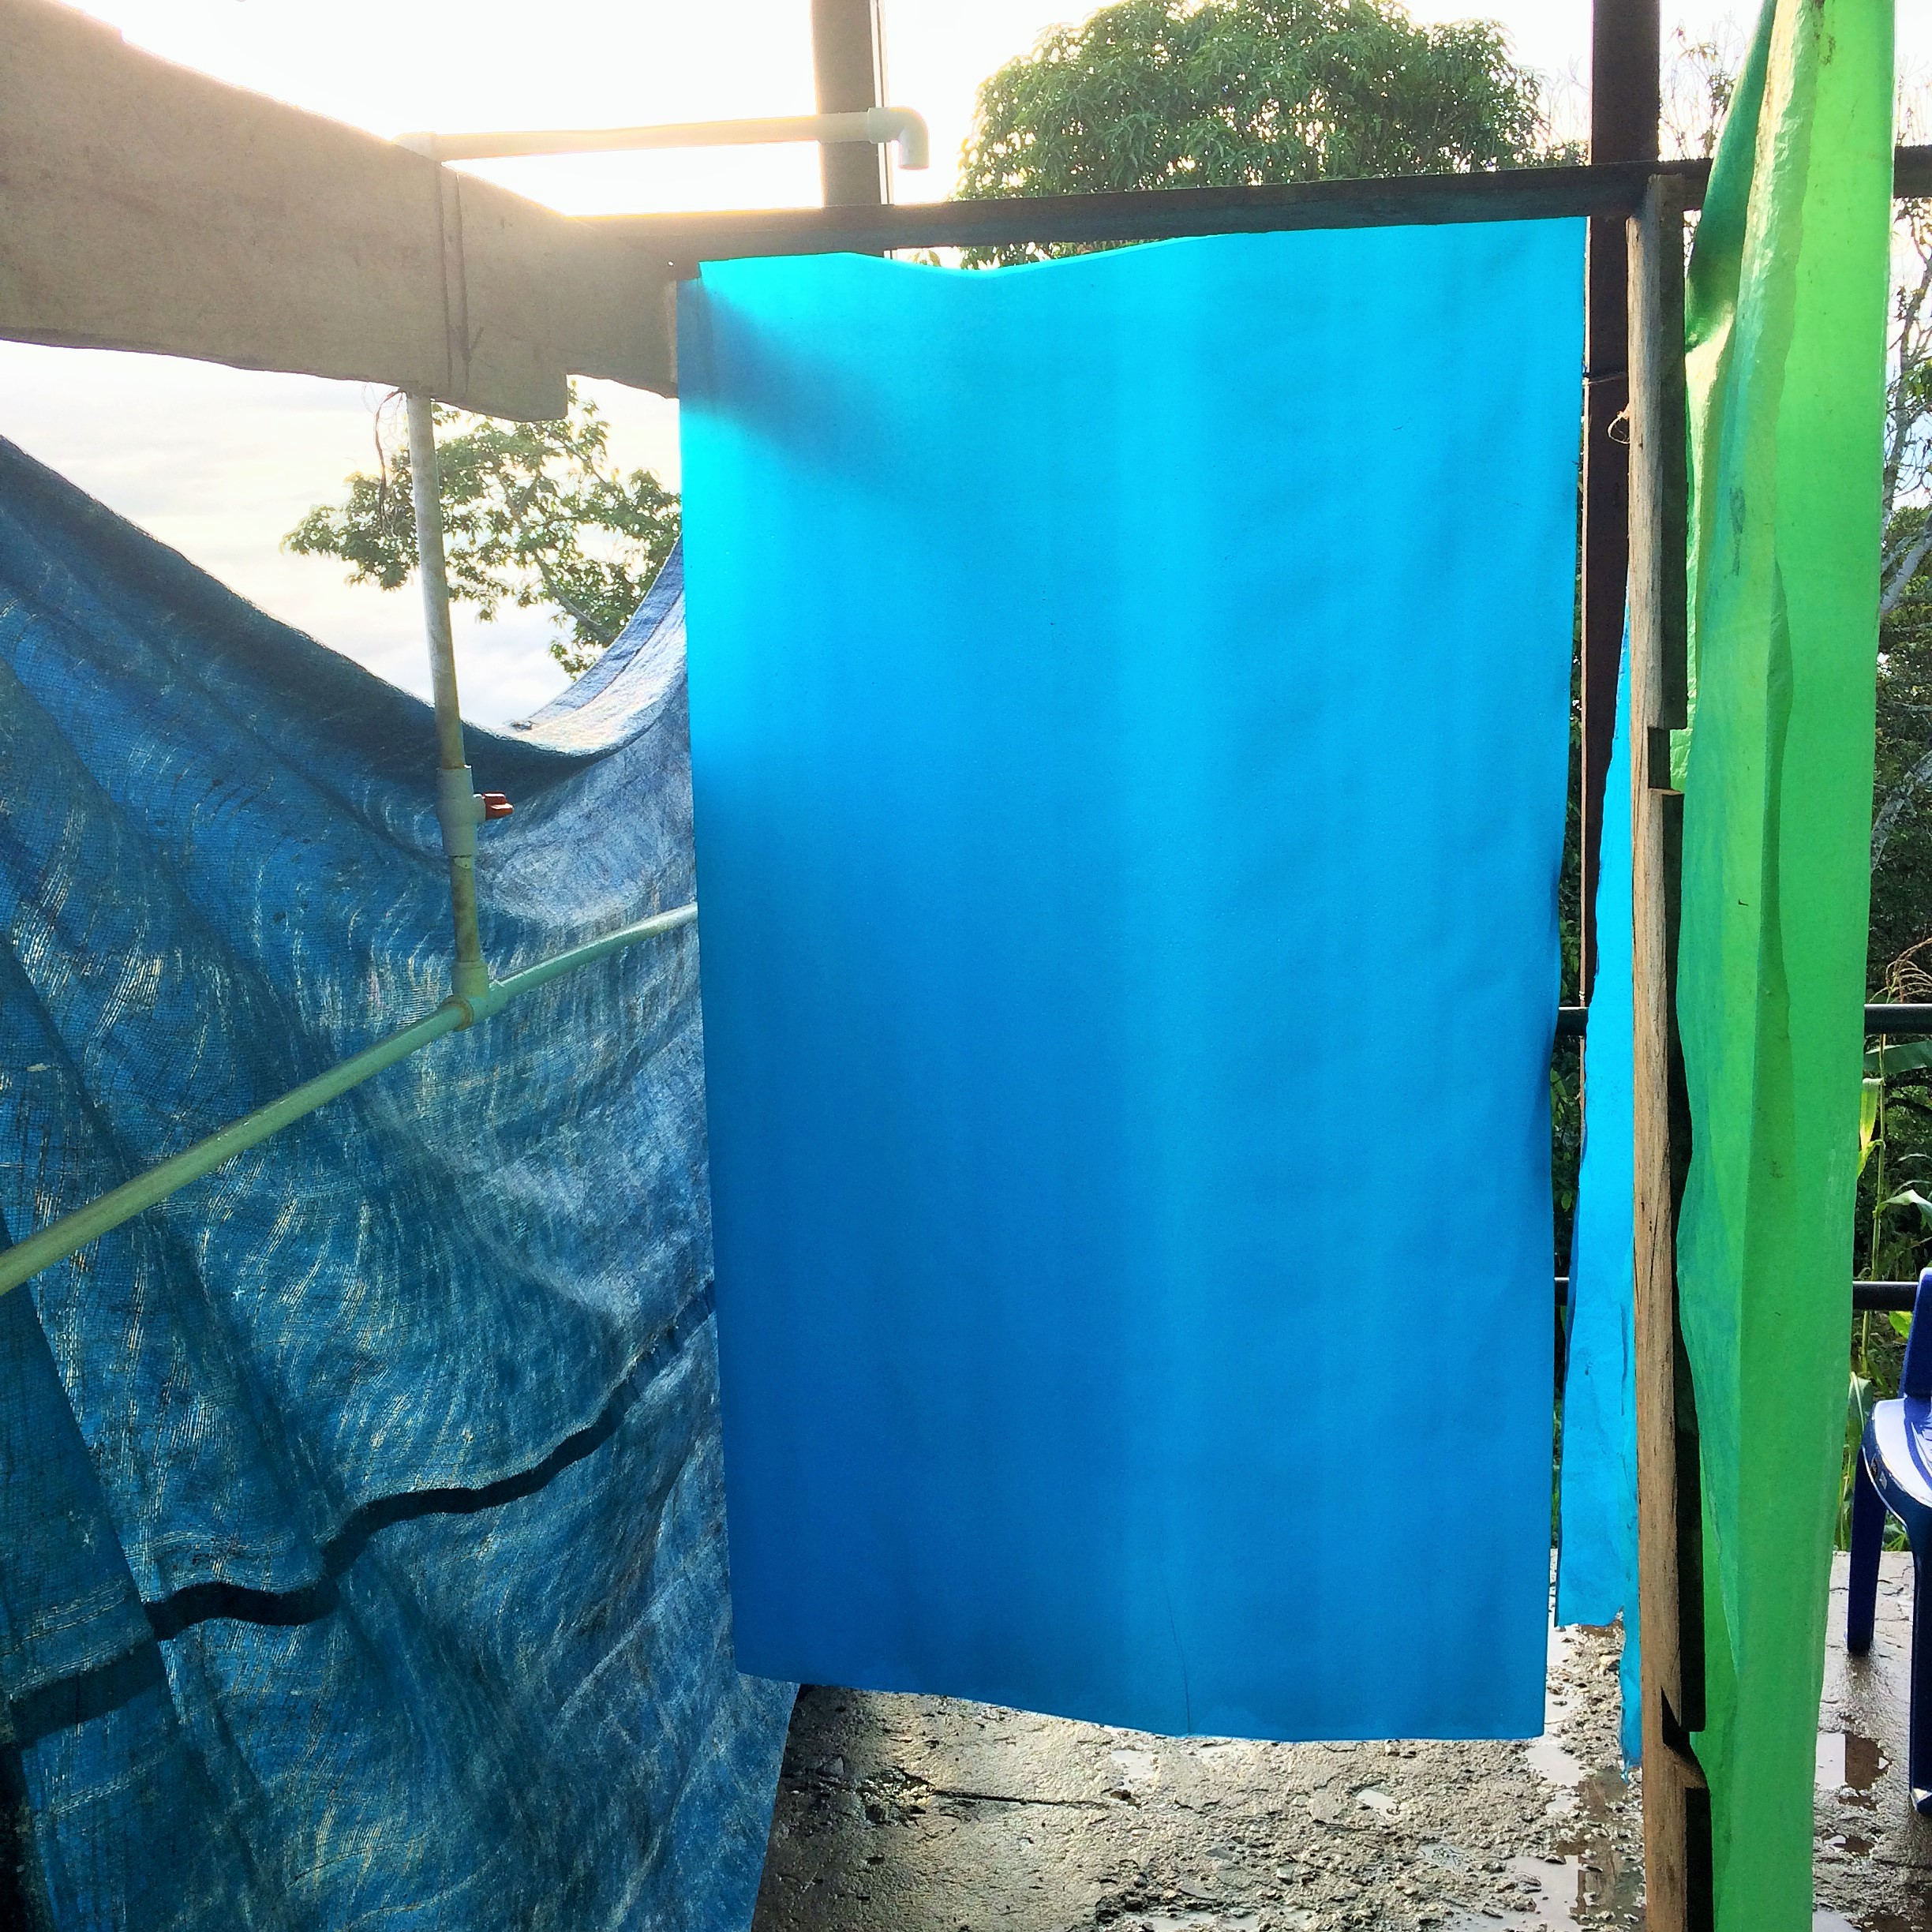 More Honduran innovation! The residents made this outdoor shower out of PVC pipe and tarps especially for the  Medico  Team.